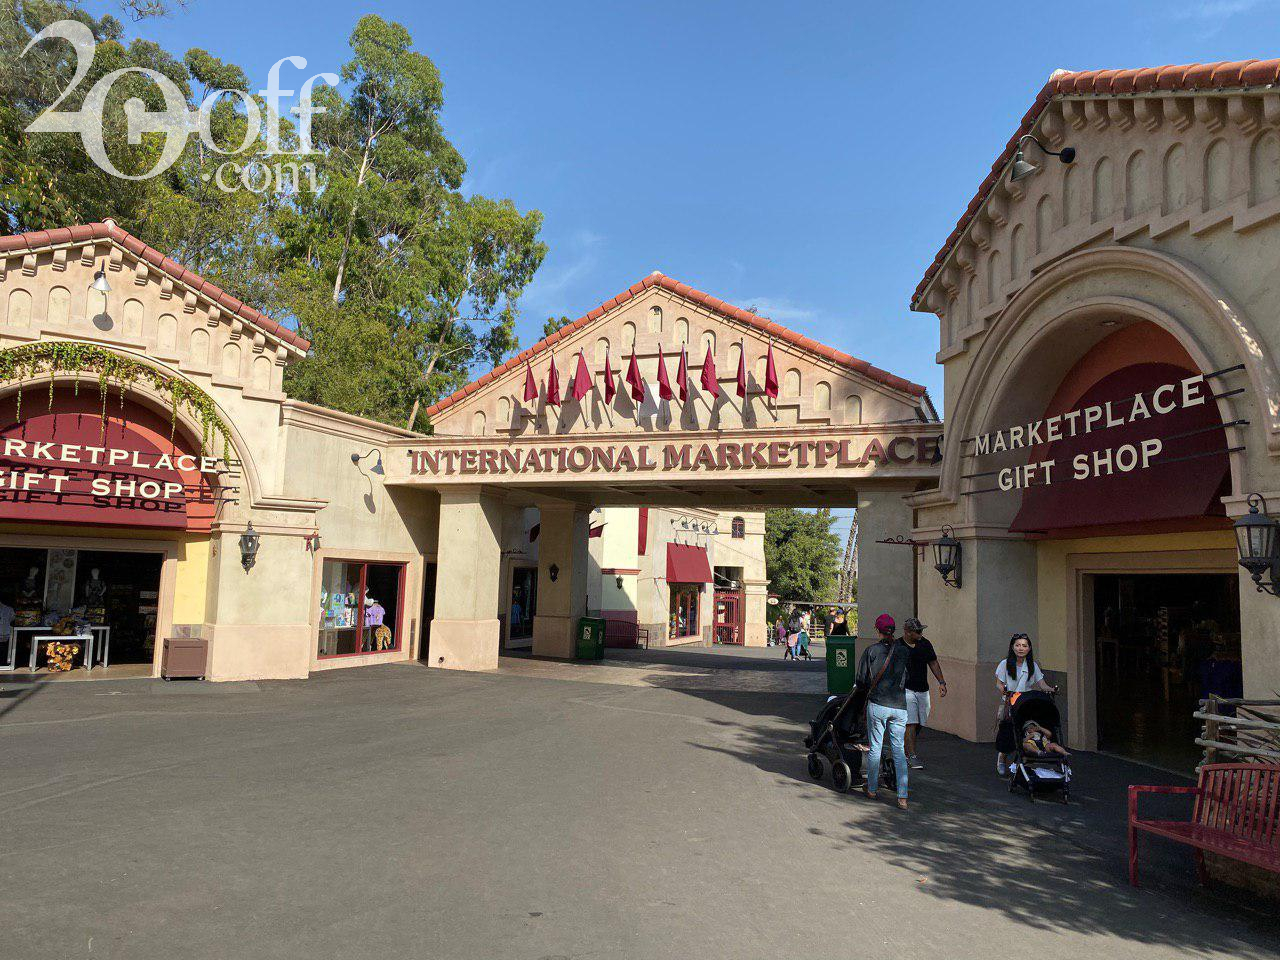 Los Angeles Zoo International Marketplace